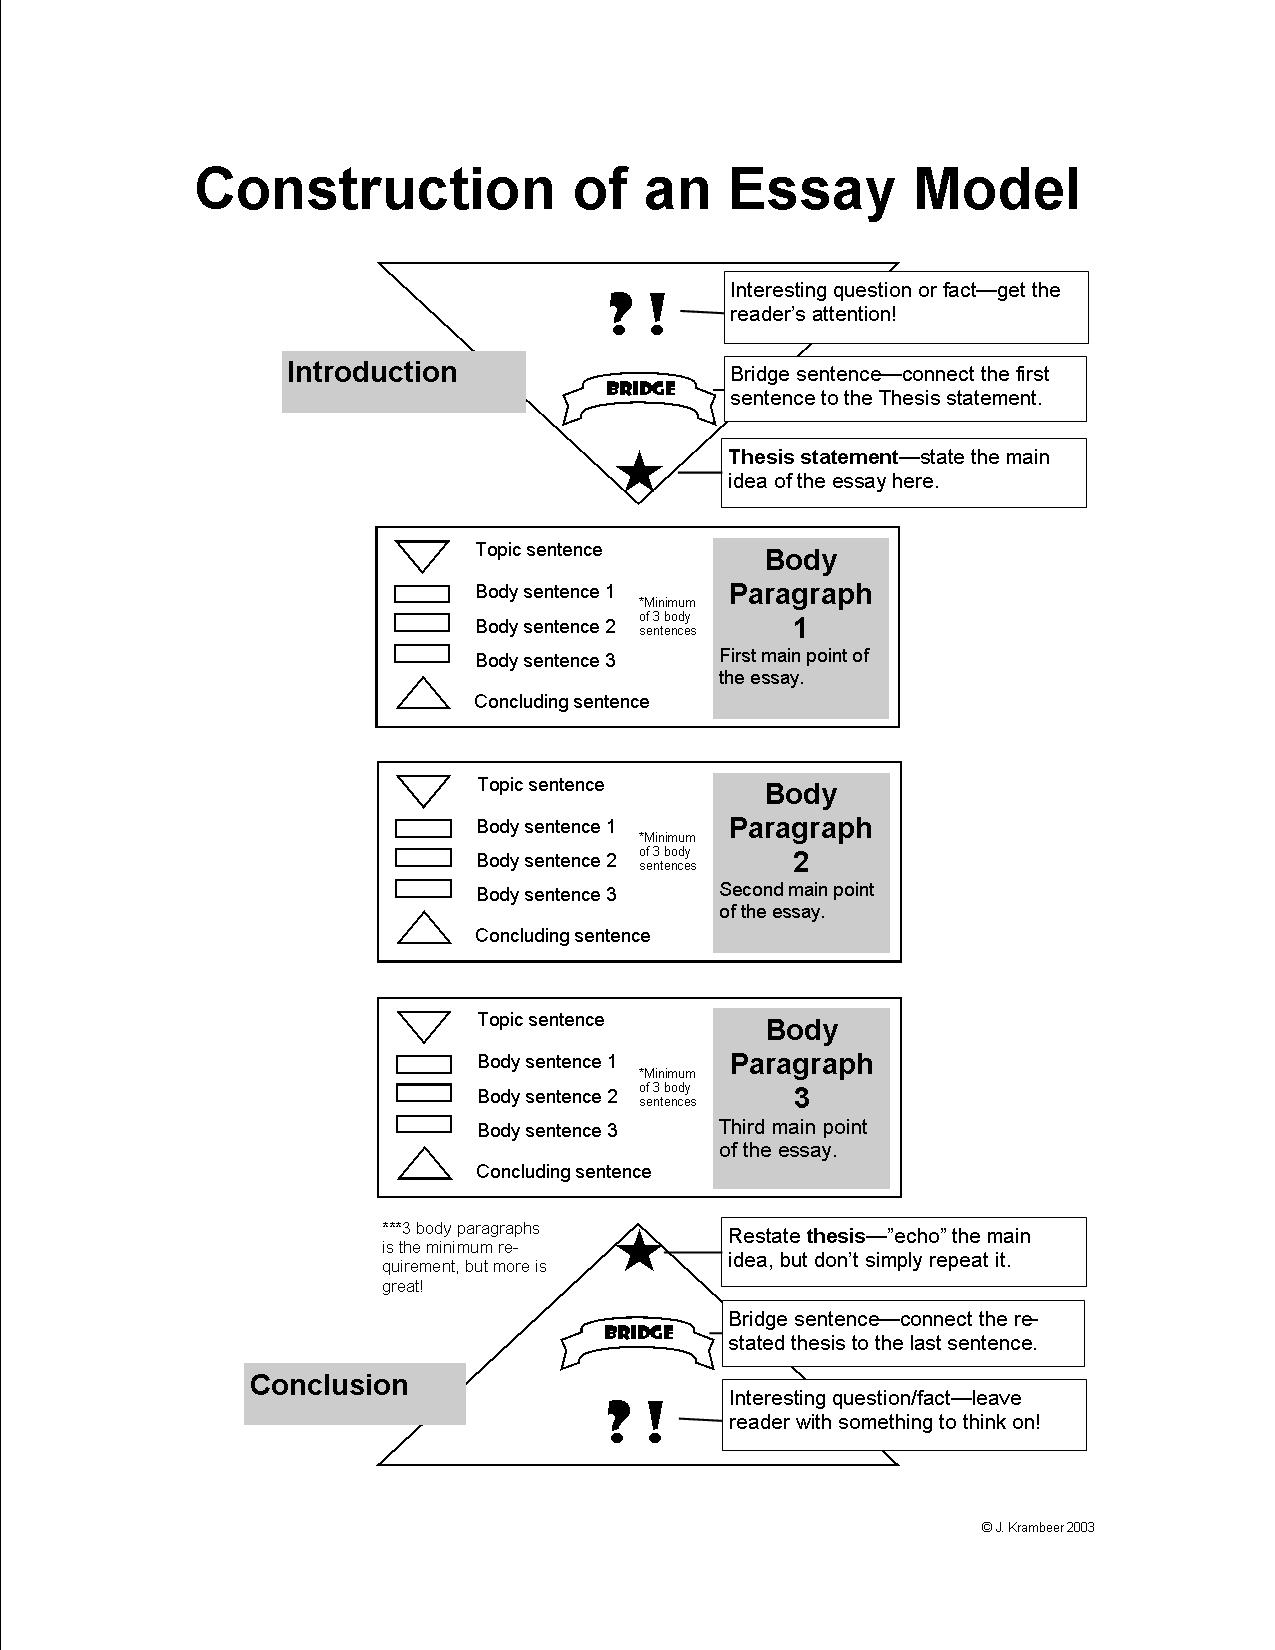 model essay model essay oglasi model essay oglasi model essay model essay oglasi coschool is cool essay modelessay model